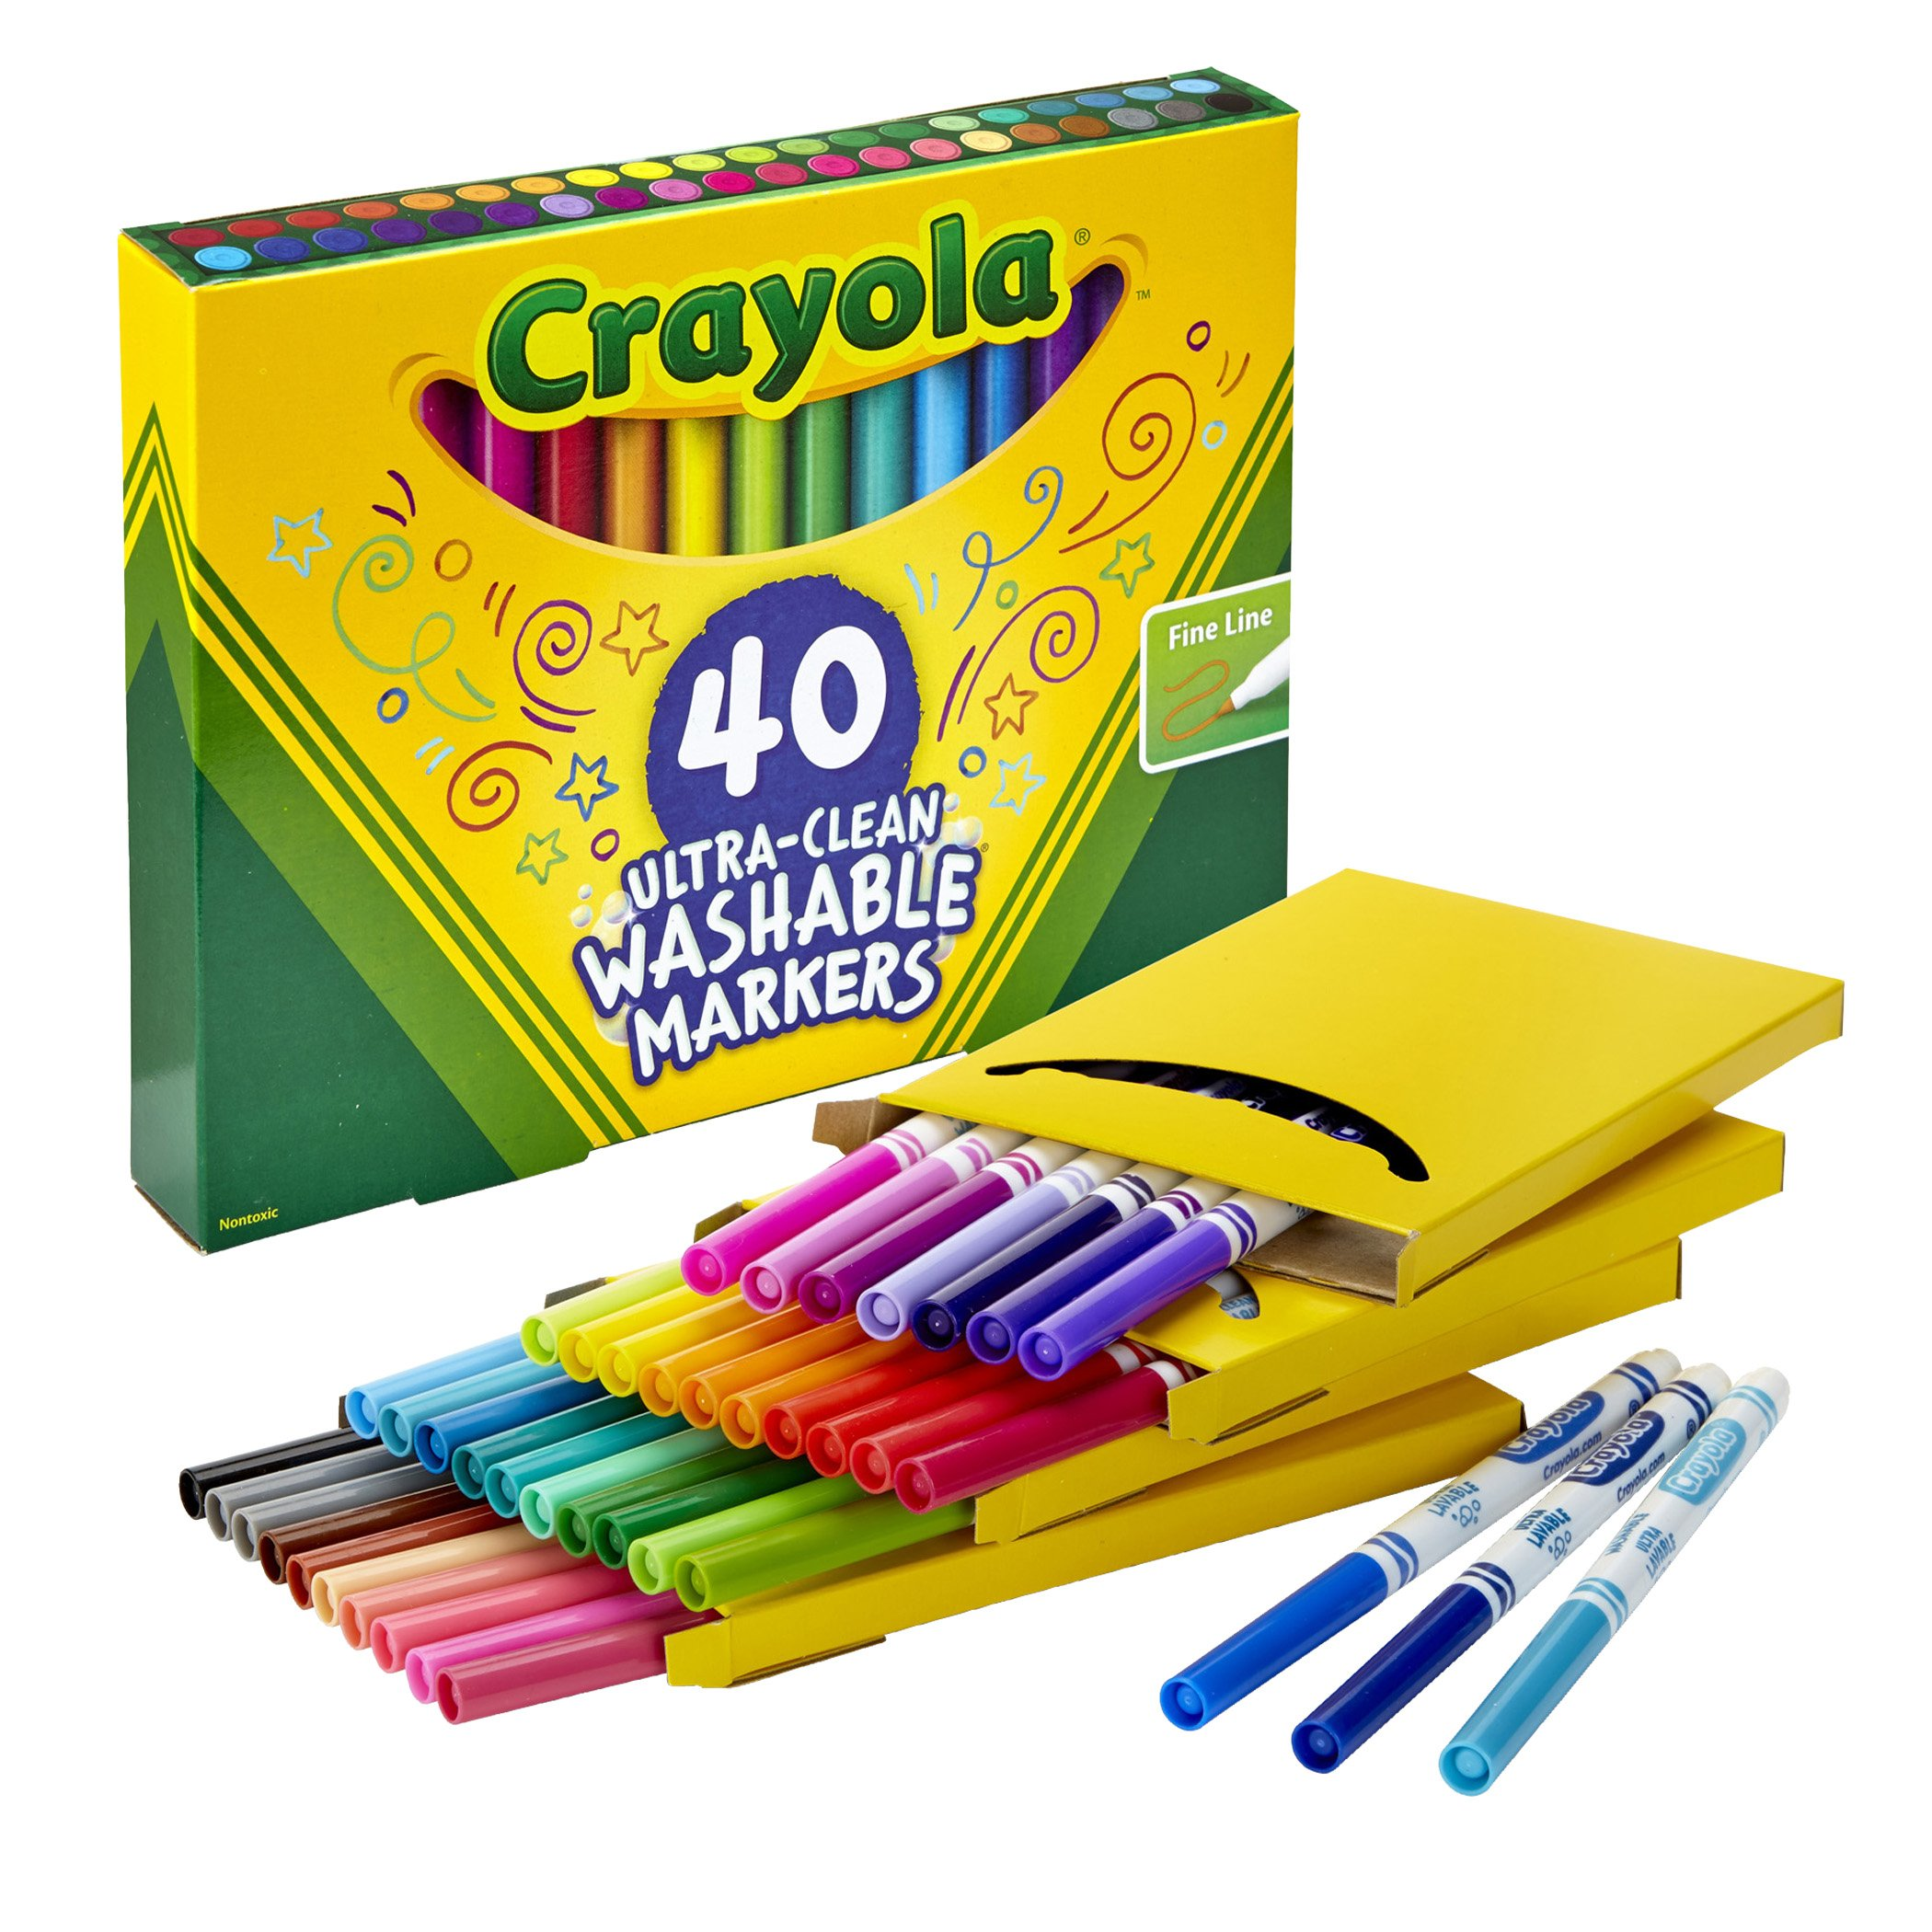 Crayola Ultra Clean Washable Markers, Fine Line Marker Set, Gift for Kids, 40Count